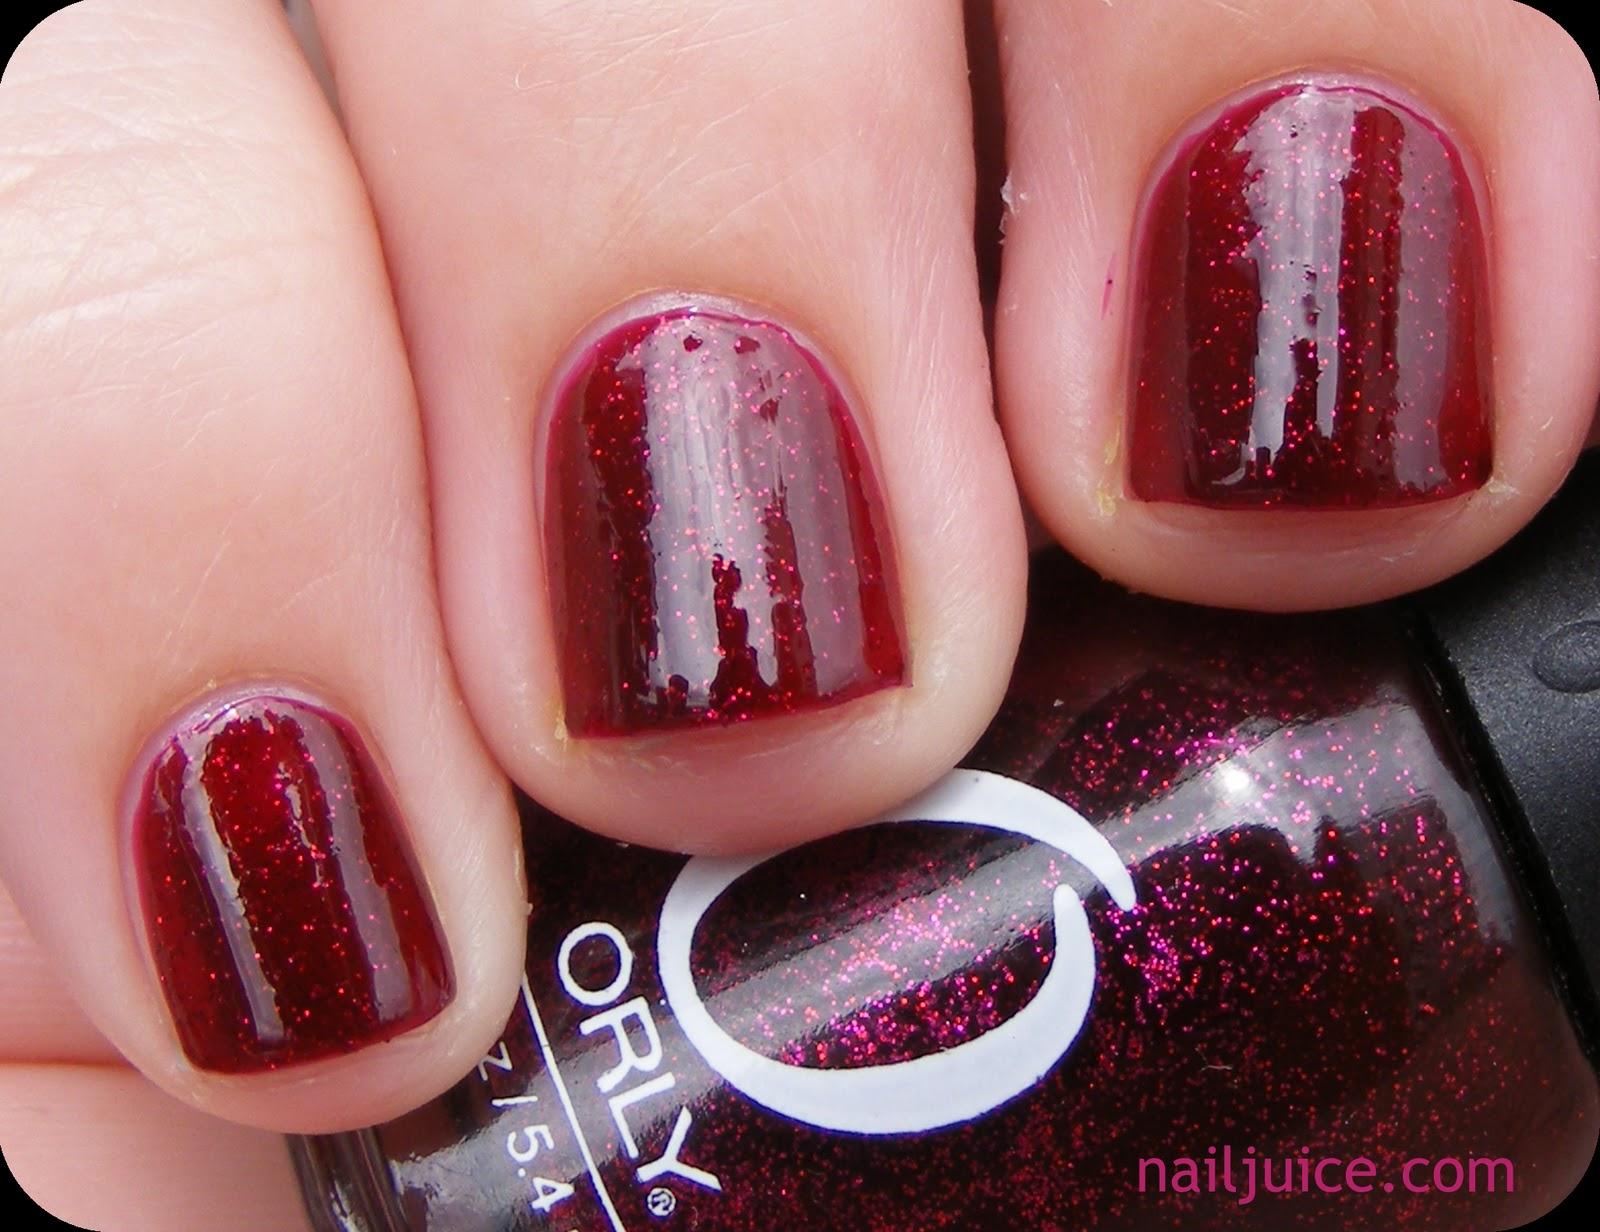 Nail juice orly on the list orly on the list geenschuldenfo Image collections